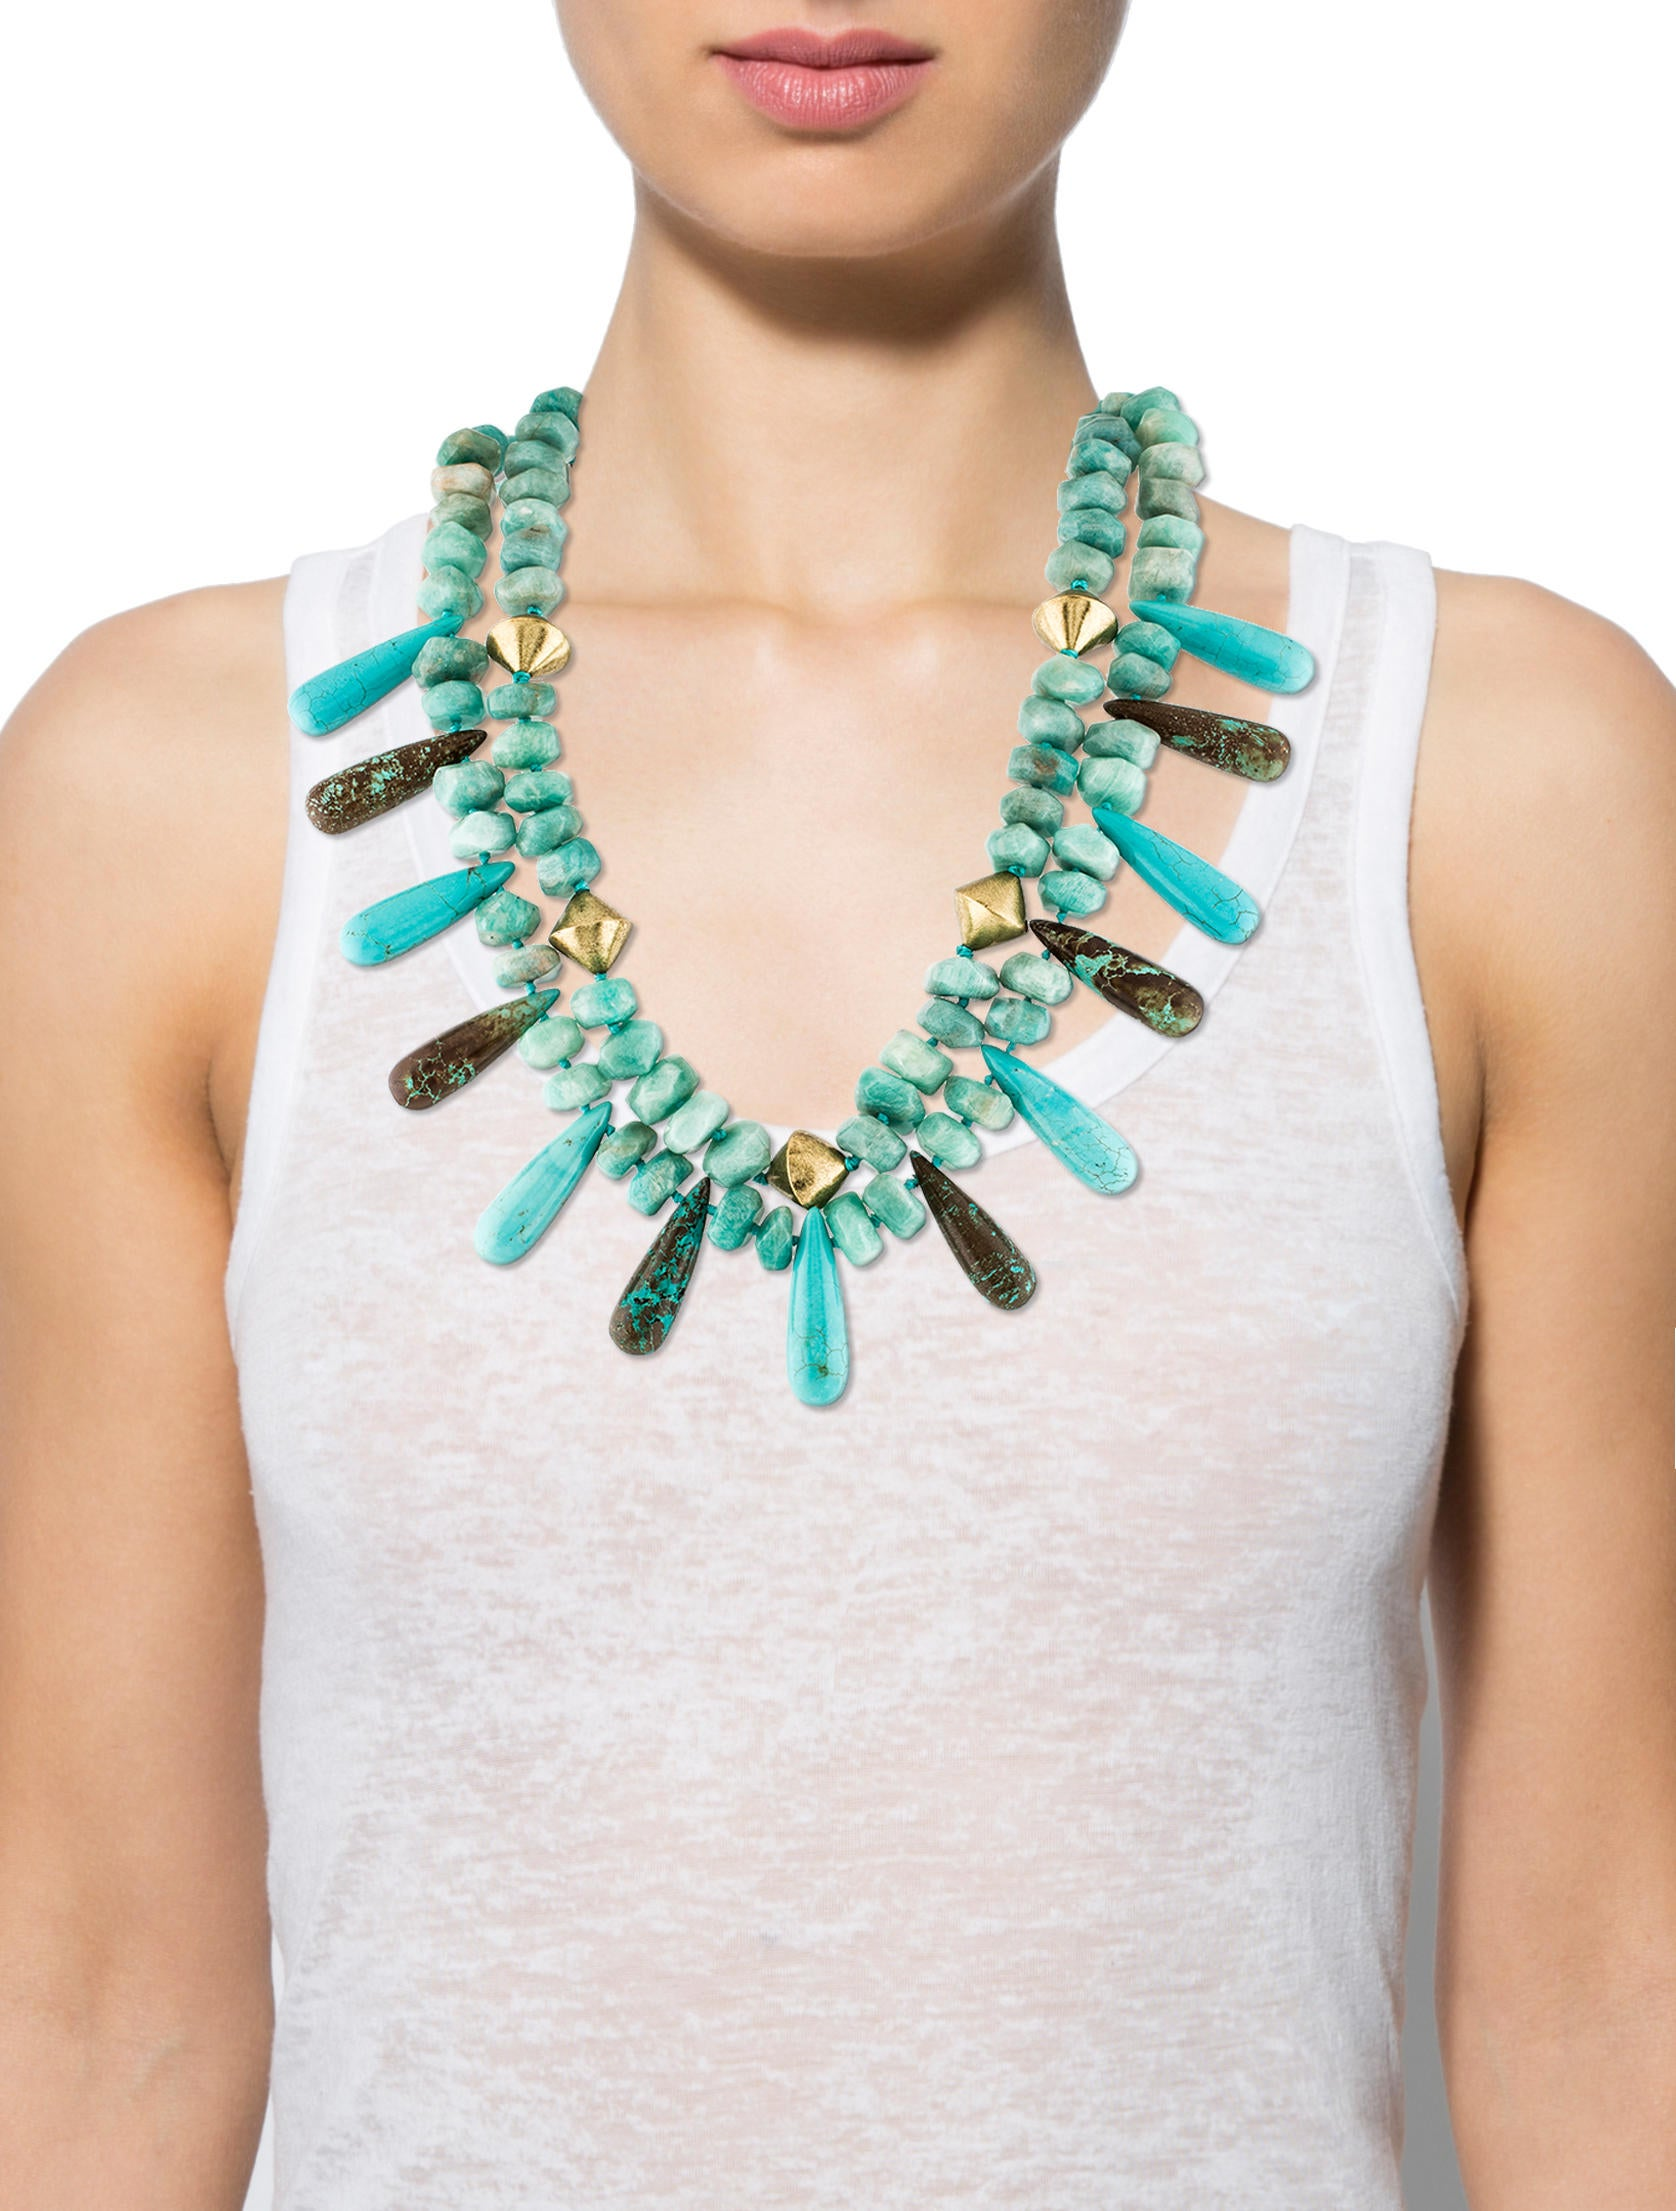 10 Kitchen And Home Decor Items Every 20 Something Needs: Nest Jewelry Amazonite & Turquoise Double Strand Necklace